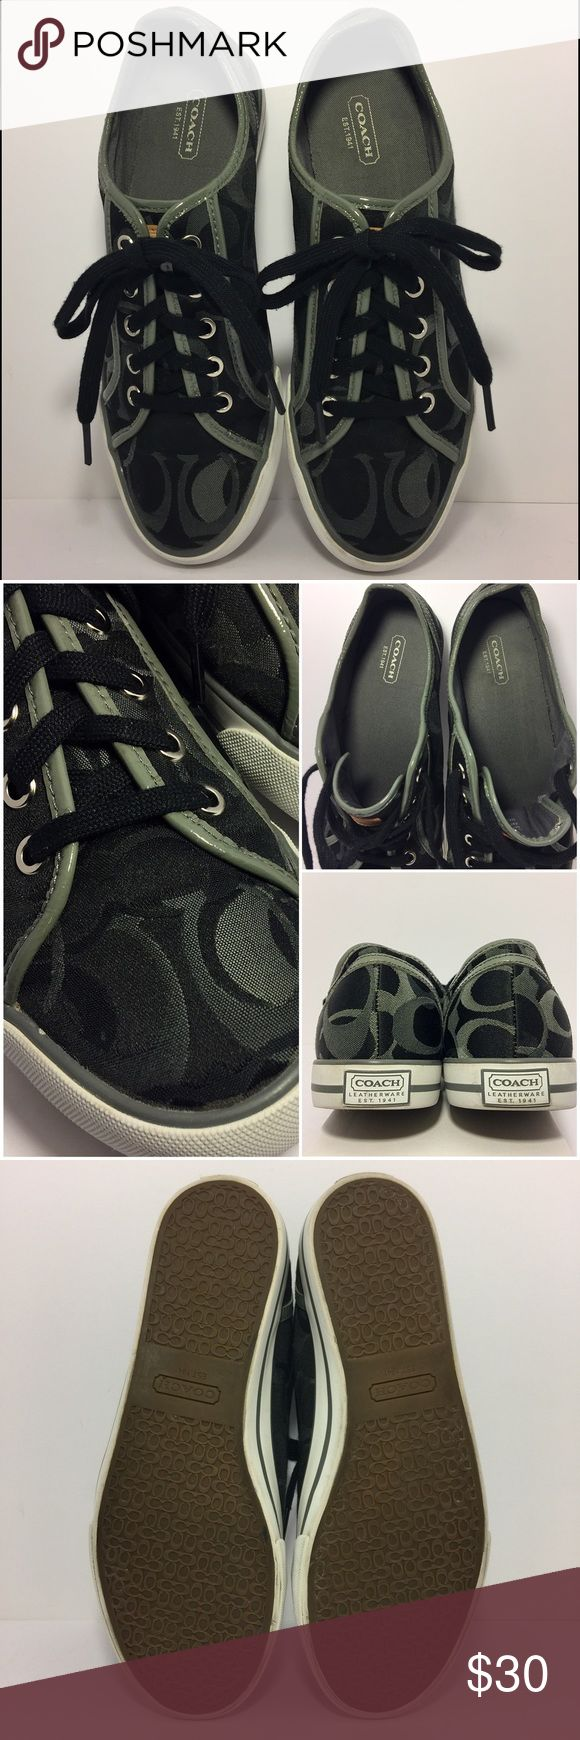 COACH Black and Grey Signature Canvas Sneakers Pristine condition Coach sneakers for dress-down Friday or hanging out. Canvas fabric upper with vinyl trim with no signs of wear. Meticulously cared for with fully in-tact insoles. No visible signs of wear on the rubber soles, clean up great and look brand new. These are must-have casual playtime shoes. Coach Shoes Sneakers